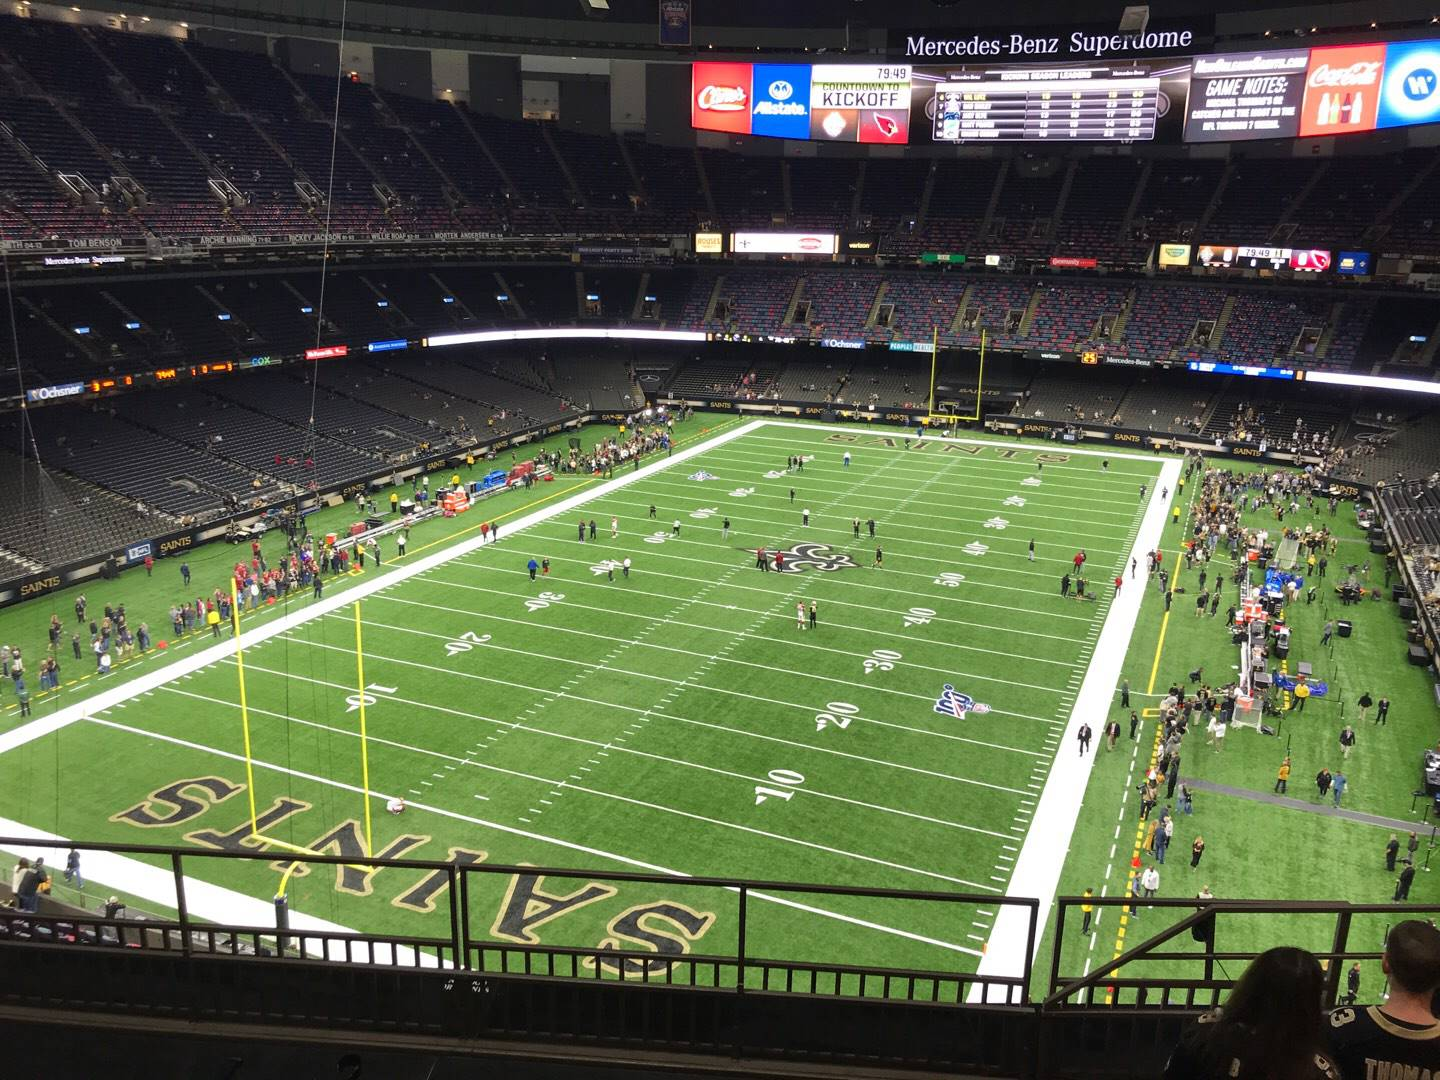 Mercedes-Benz Superdome Section 650 Row 7 Seat 6